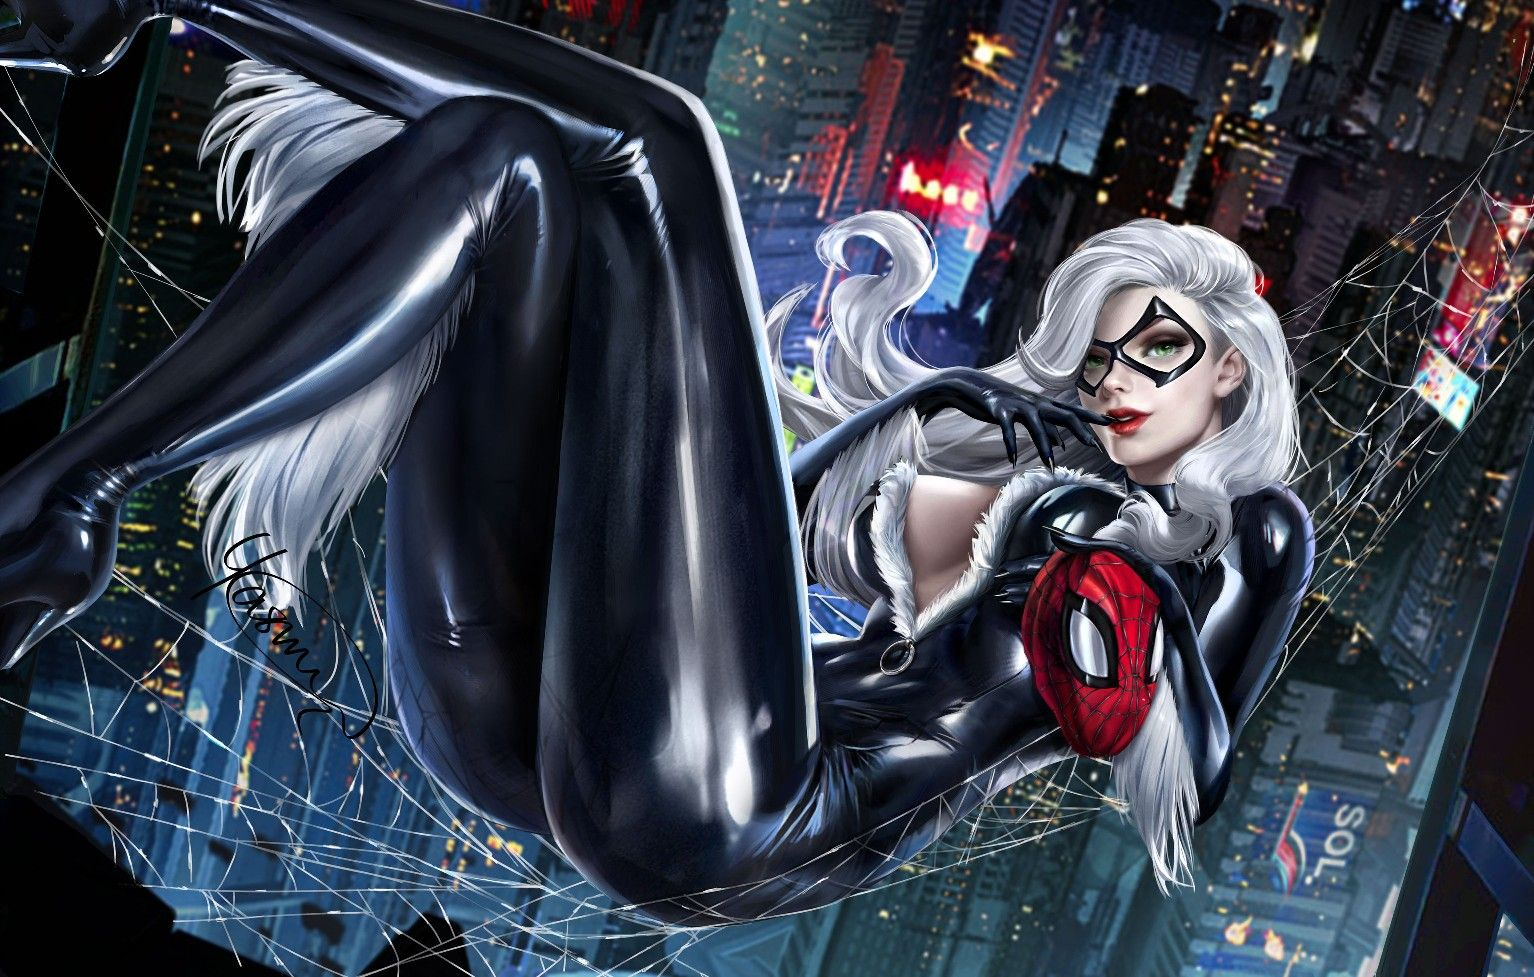 Marvel's Black Cat cosplay fan